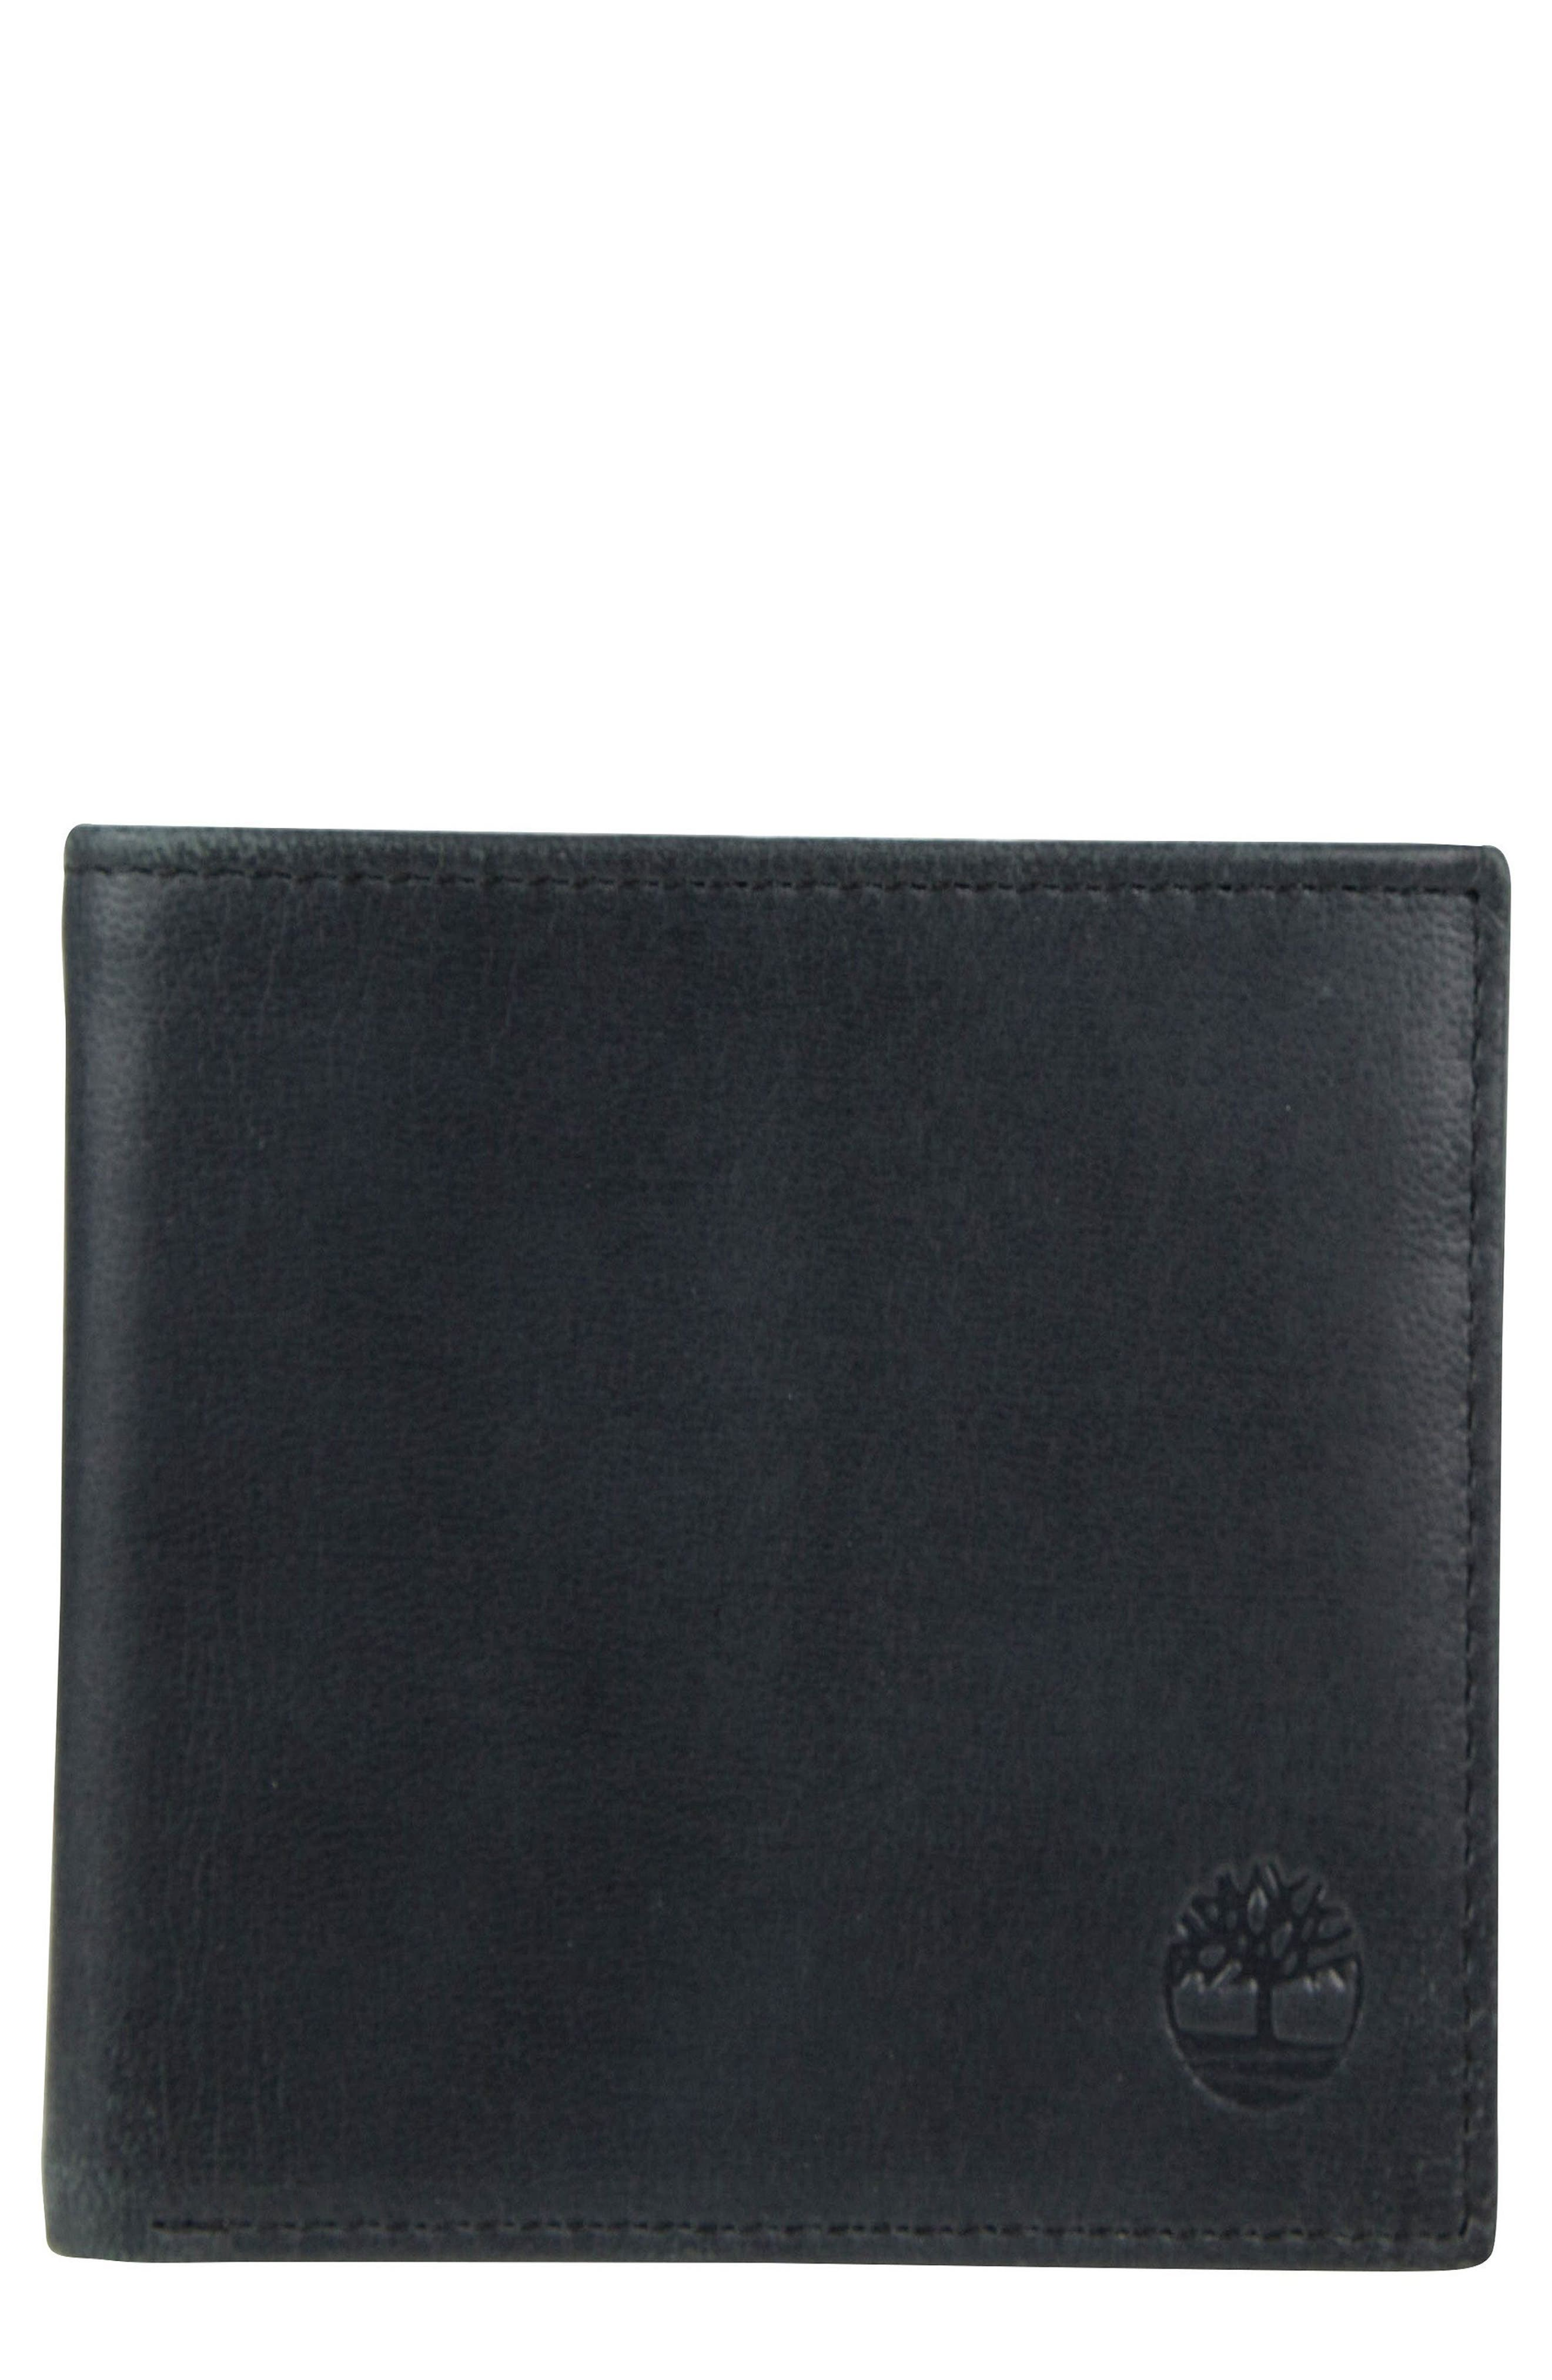 Cloudy Leather Wallet,                             Main thumbnail 1, color,                             Black